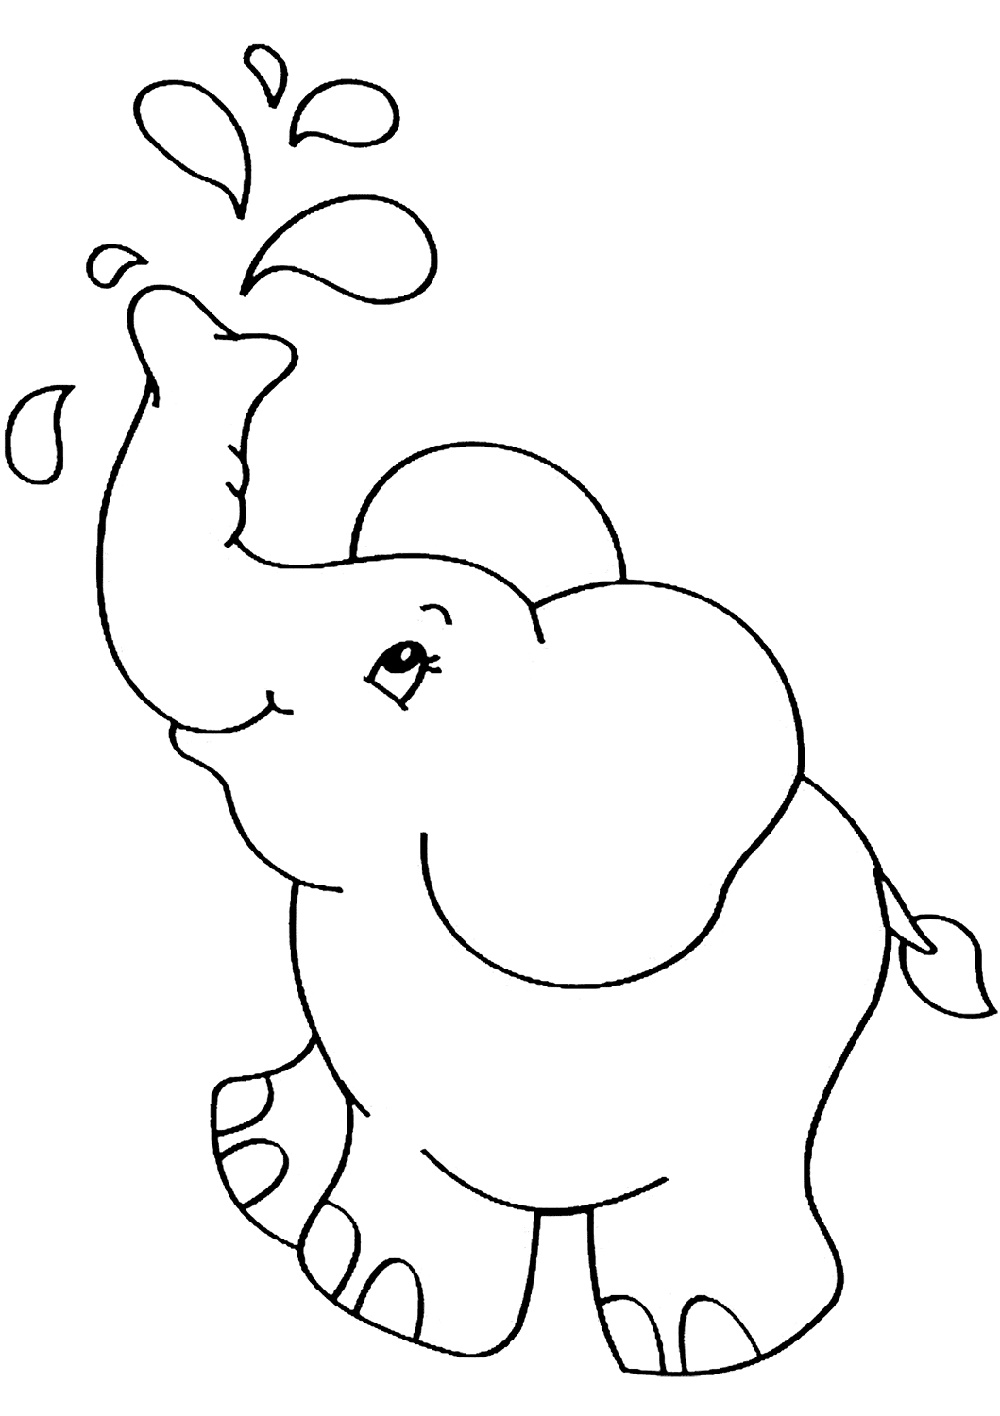 Baby Elephant Coloring Pages for Kindergarten in 2020